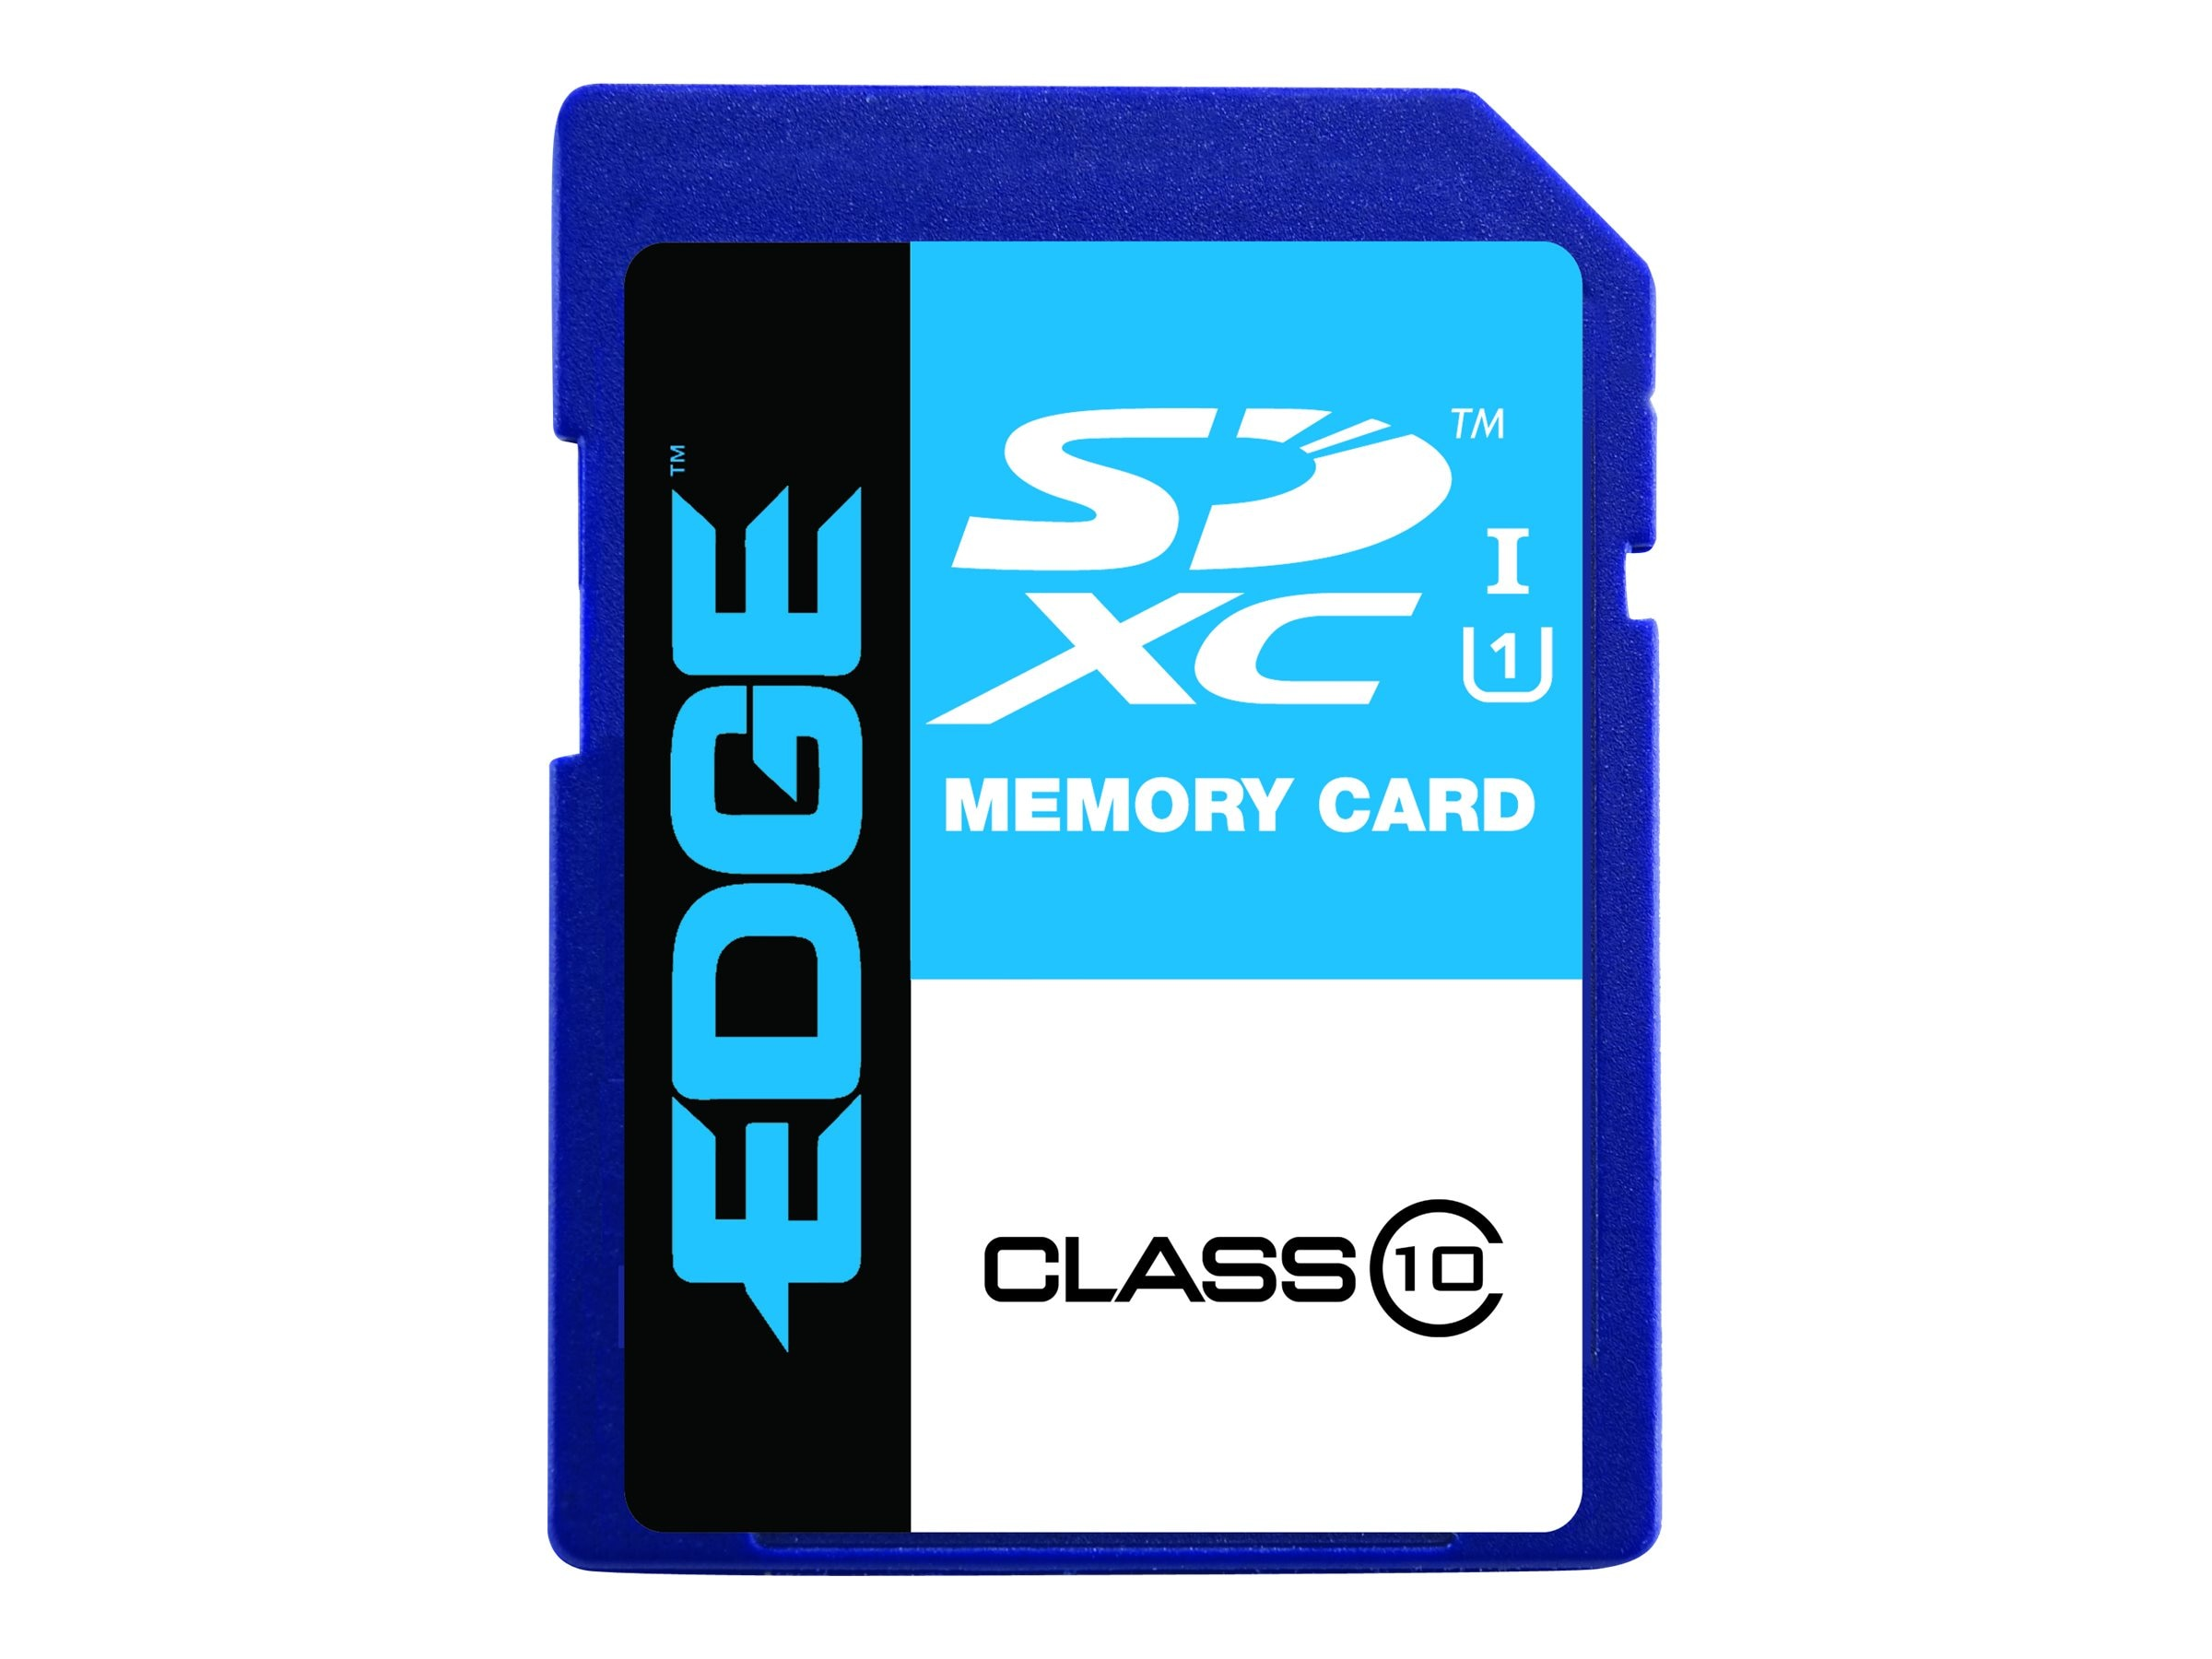 Edge 256GB UHS-I U1 SDXC Flash Memory Card, Class 10, PE247164